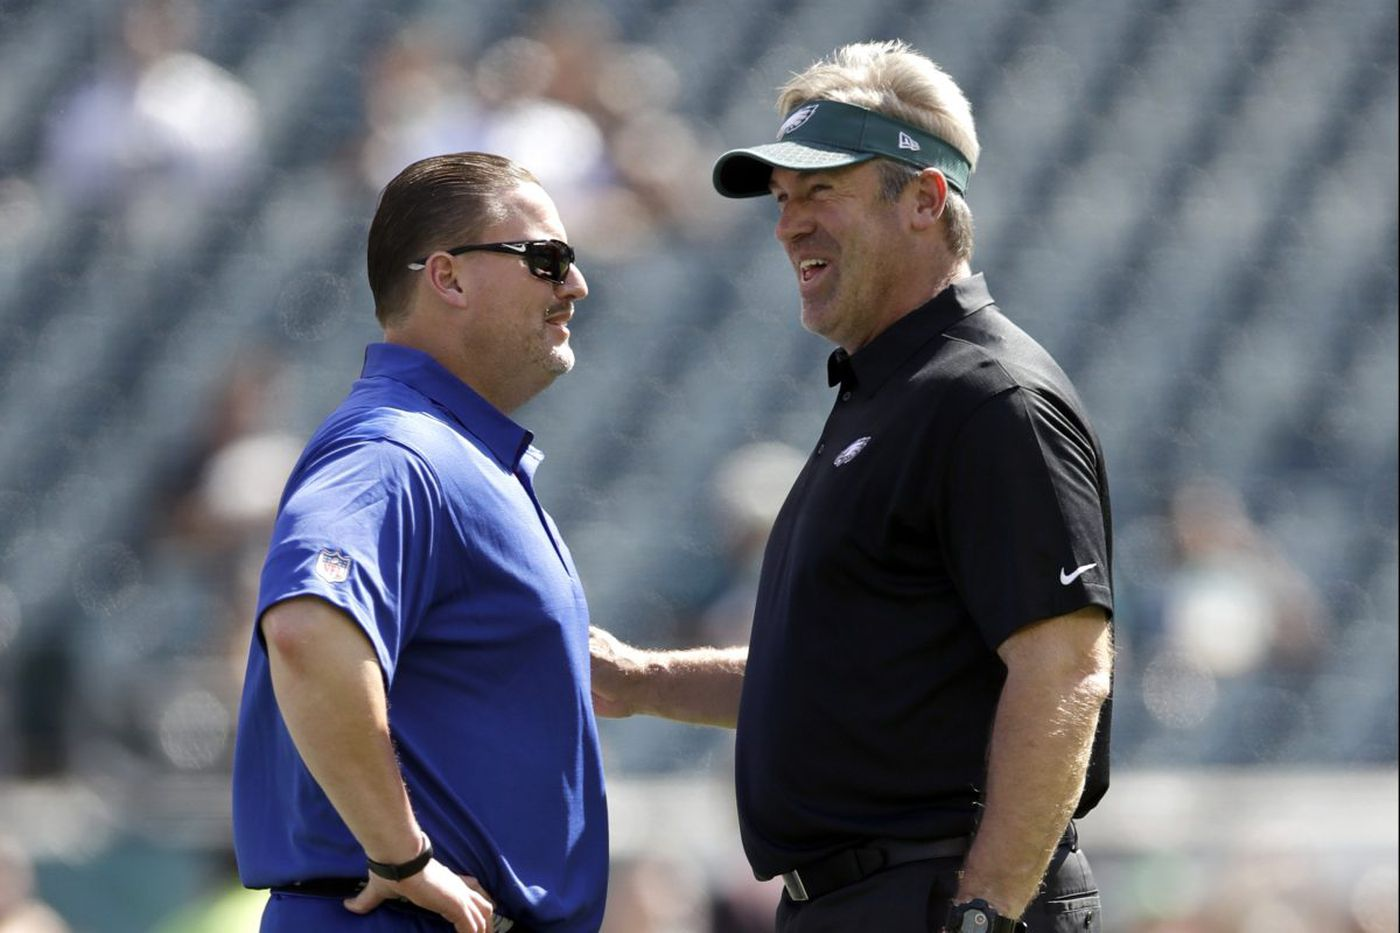 Doug Pederson calls a head-scratcher | Bob Ford